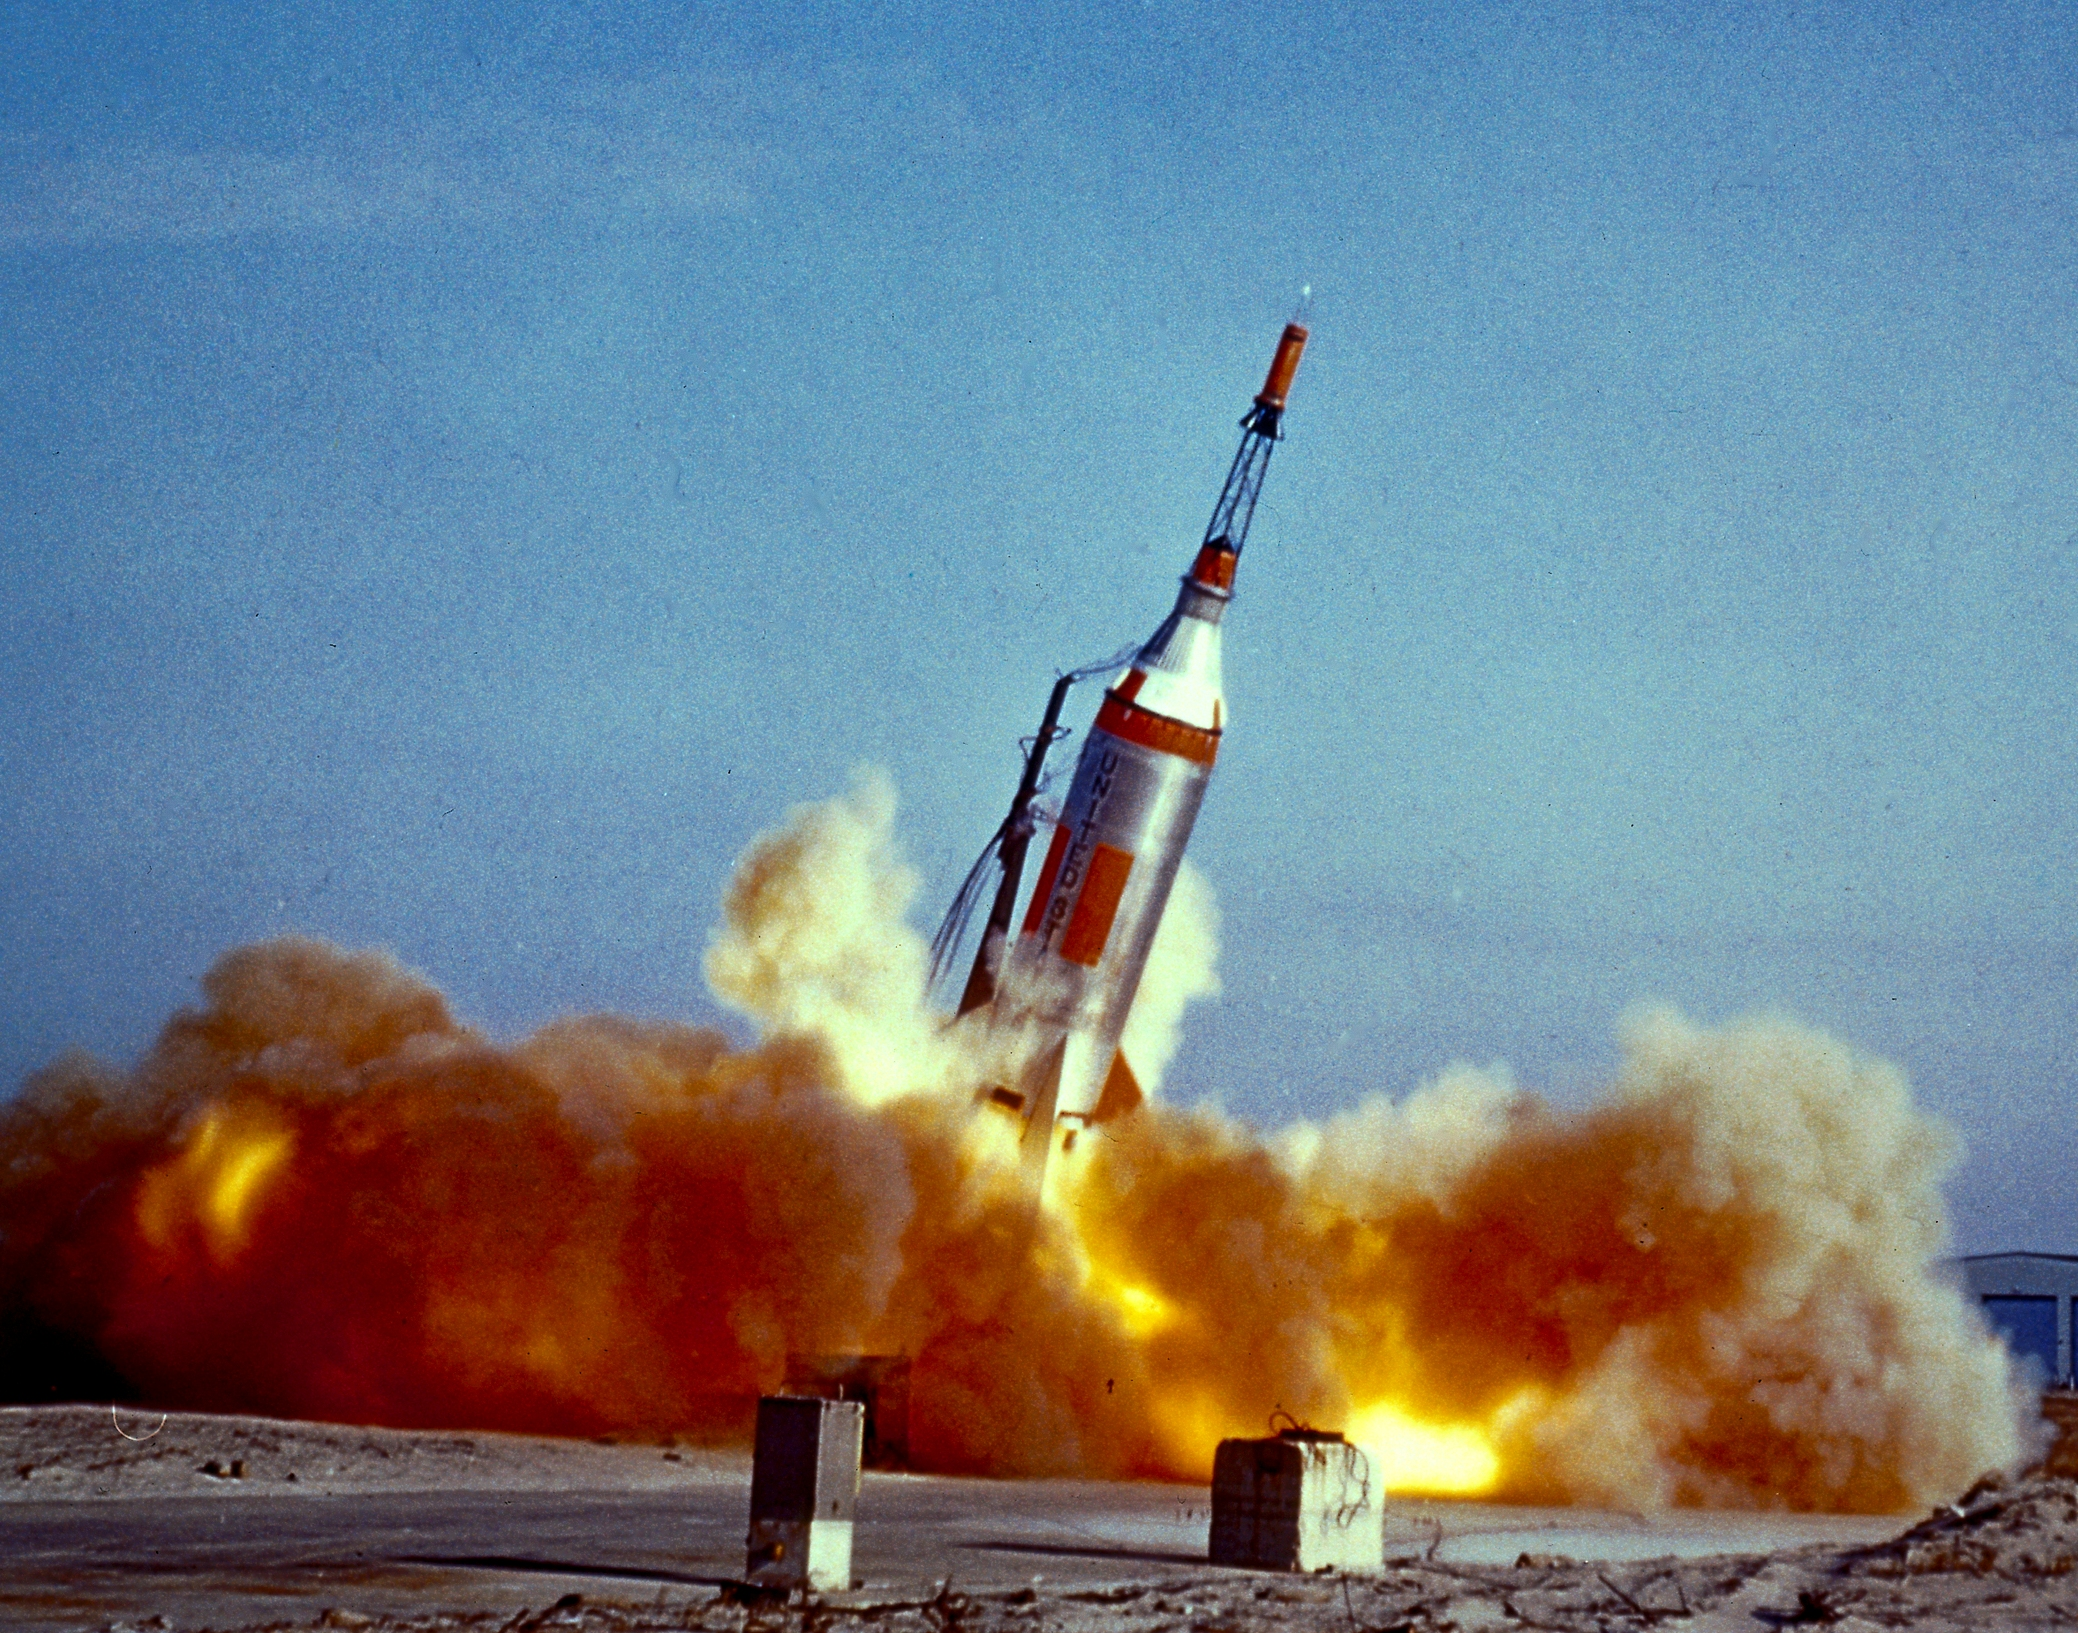 Rocket EXPLODES on LAUNCH Pad - 1950's American Space Program Failure! - Science Vibe